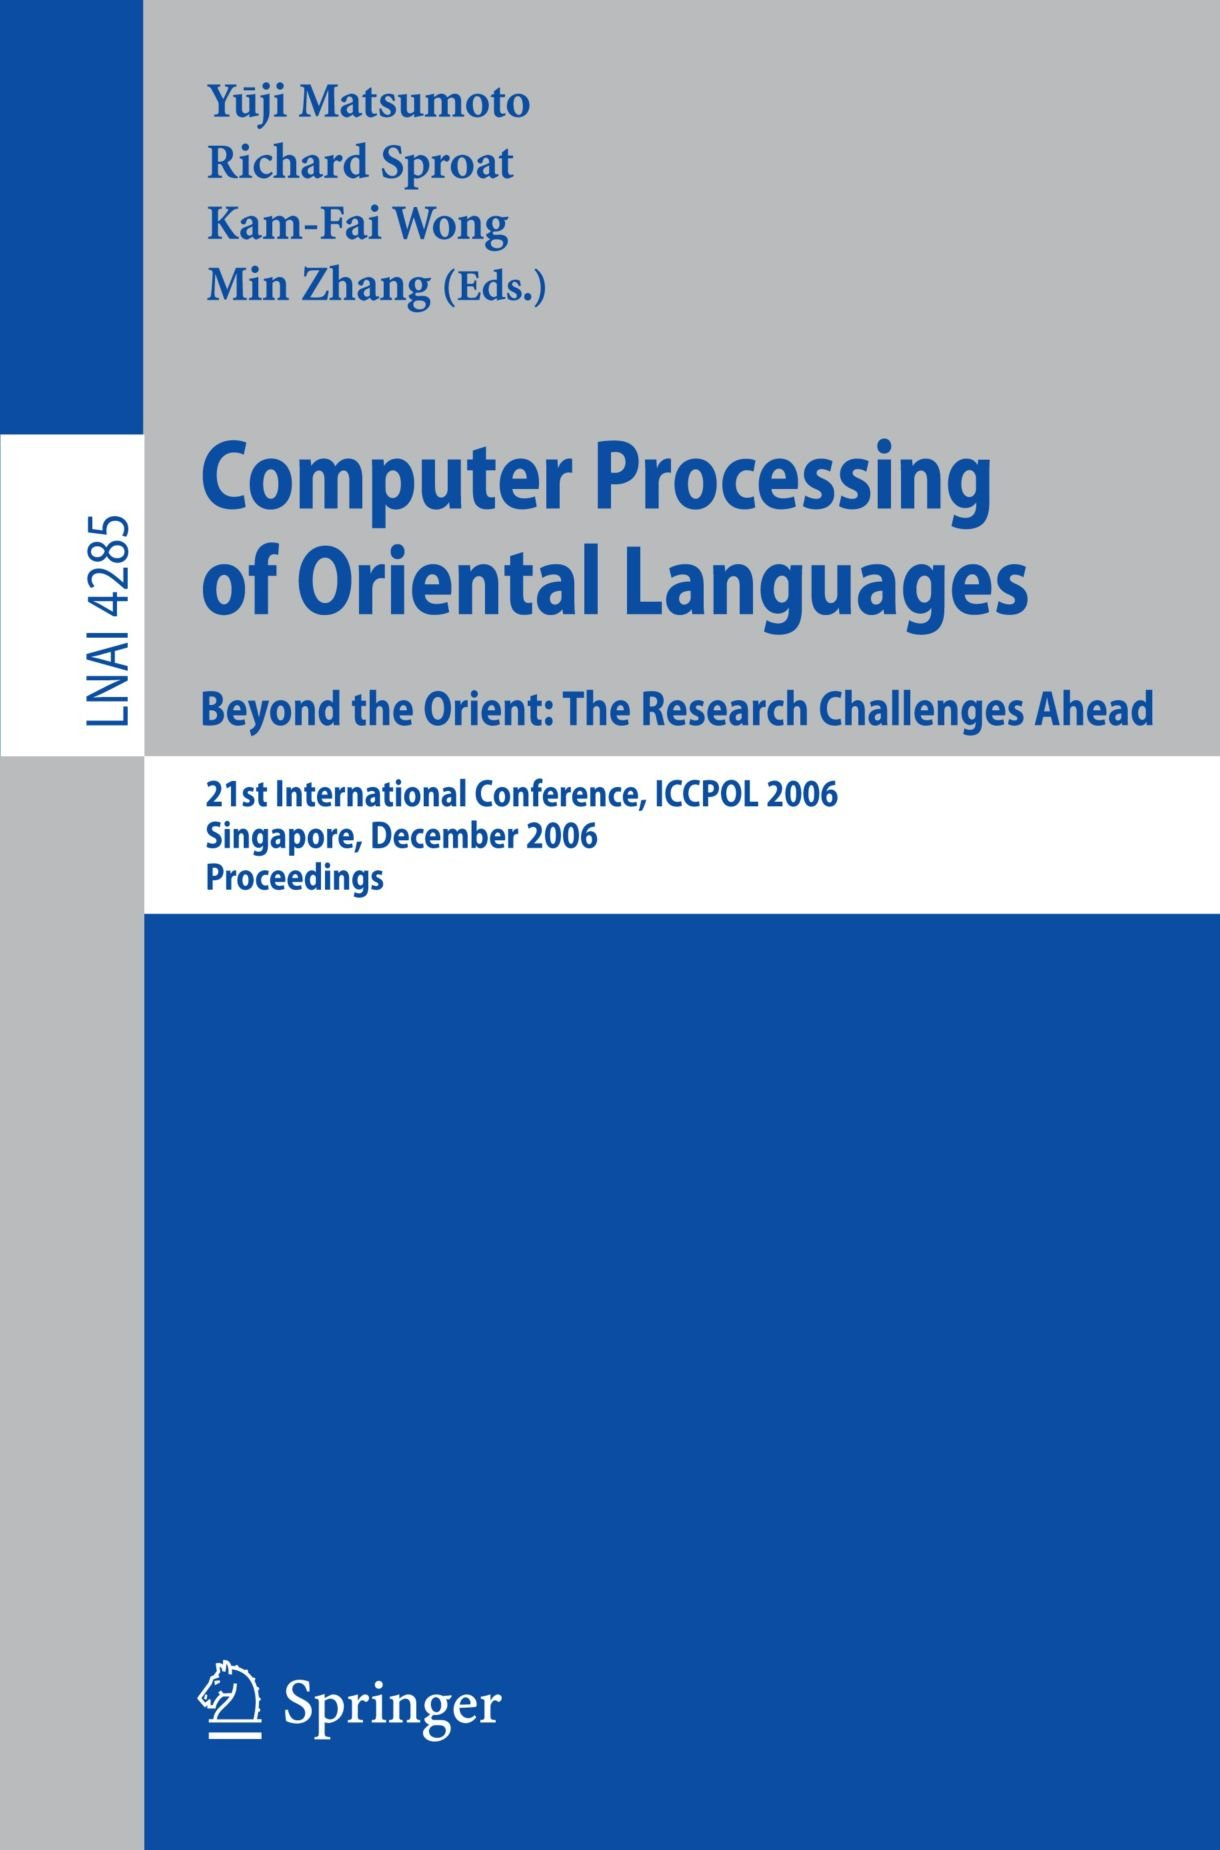 Computer Processing of Oriental Languages. Beyond the Orient: The Research Challenges Ahead: 21st International Conference, ICCPOL 2006, Singapore, ... (Lecture Notes in Computer Science)